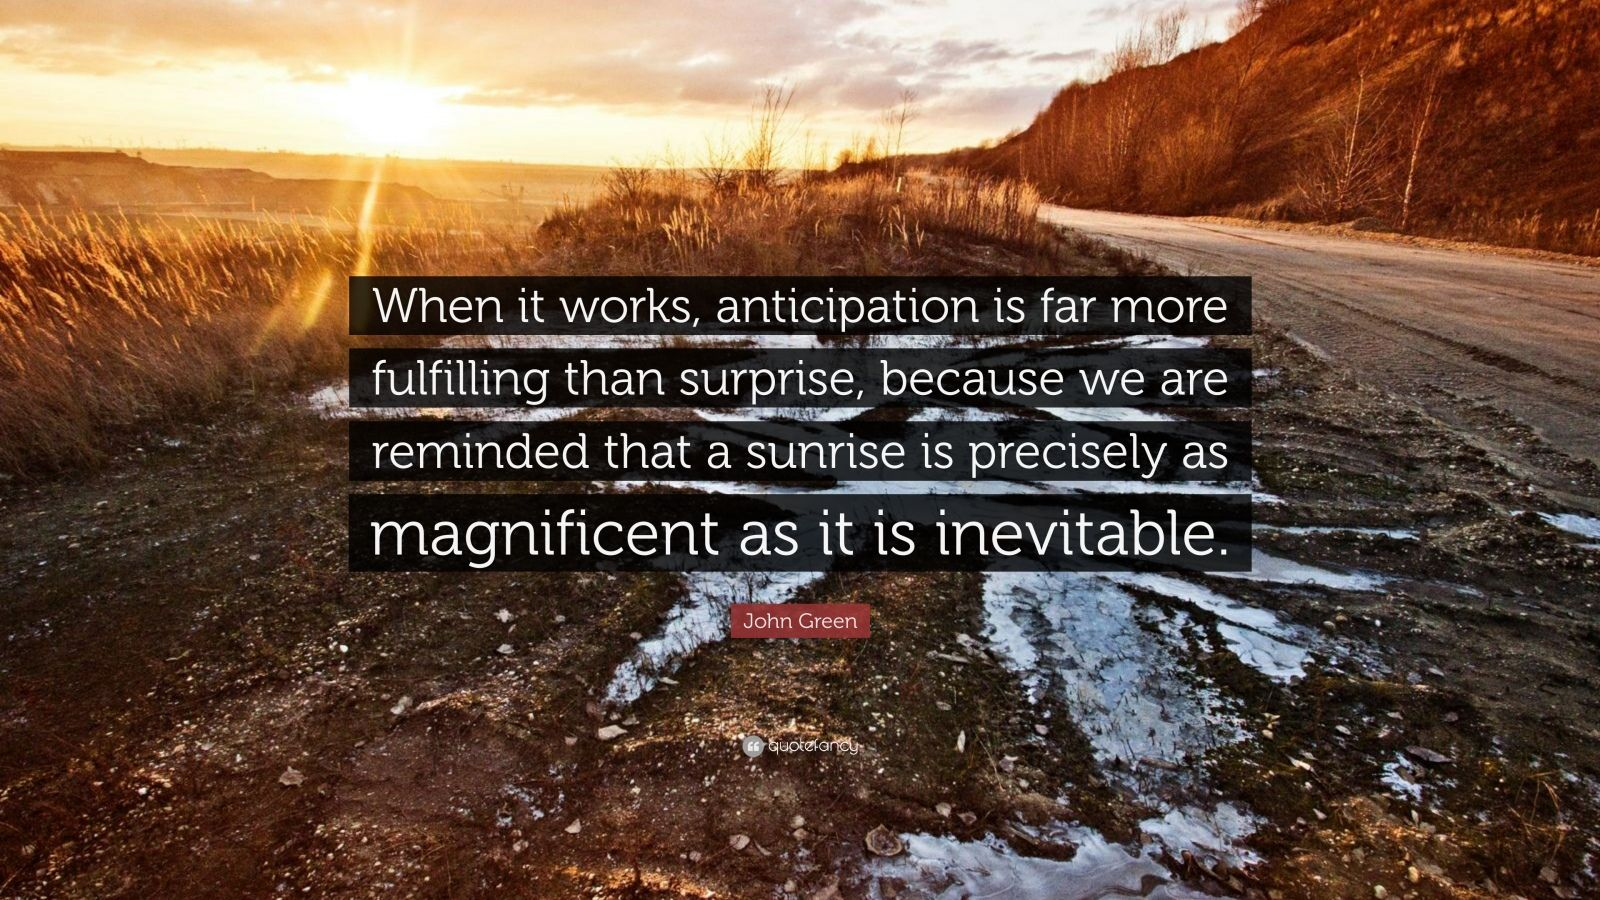 """John Green Quote: """"When it works, anticipation is far more fulfilling than surprise, because we are reminded that a sunrise is precisely as magnificent as it is inevitable."""""""